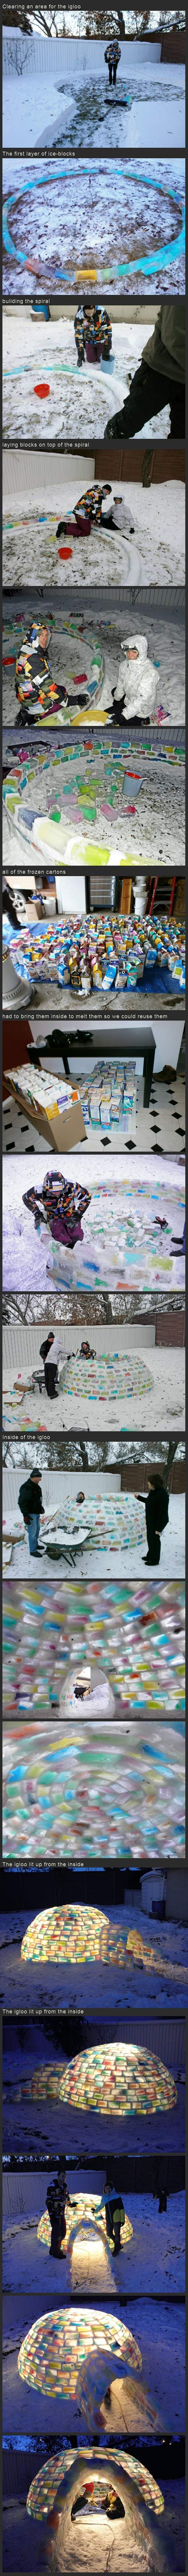 how to build an igloo,